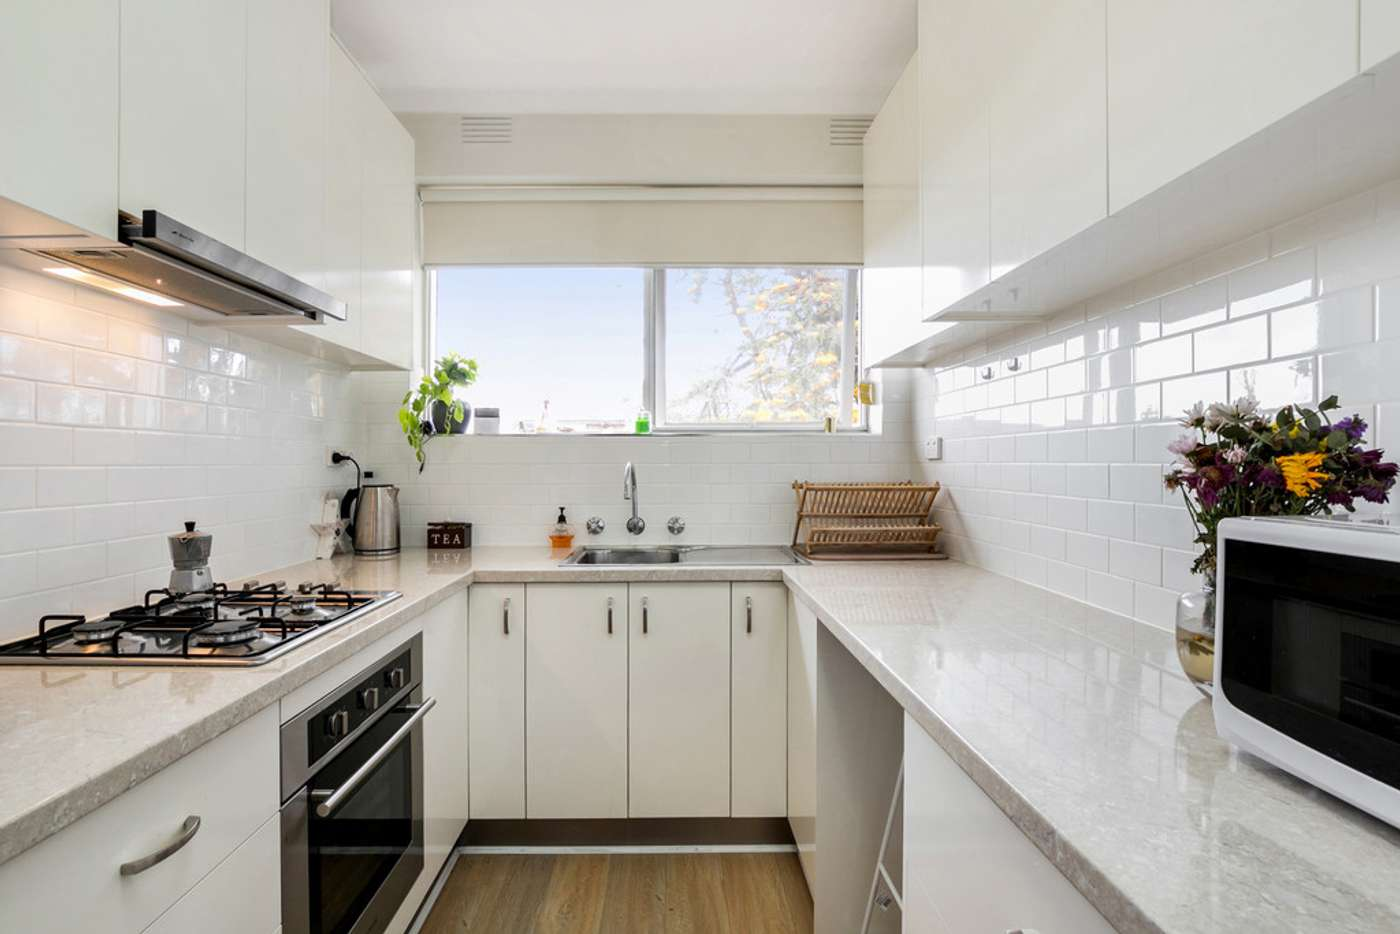 Main view of Homely apartment listing, 8/61 Balmoral Avenue, Springvale VIC 3171